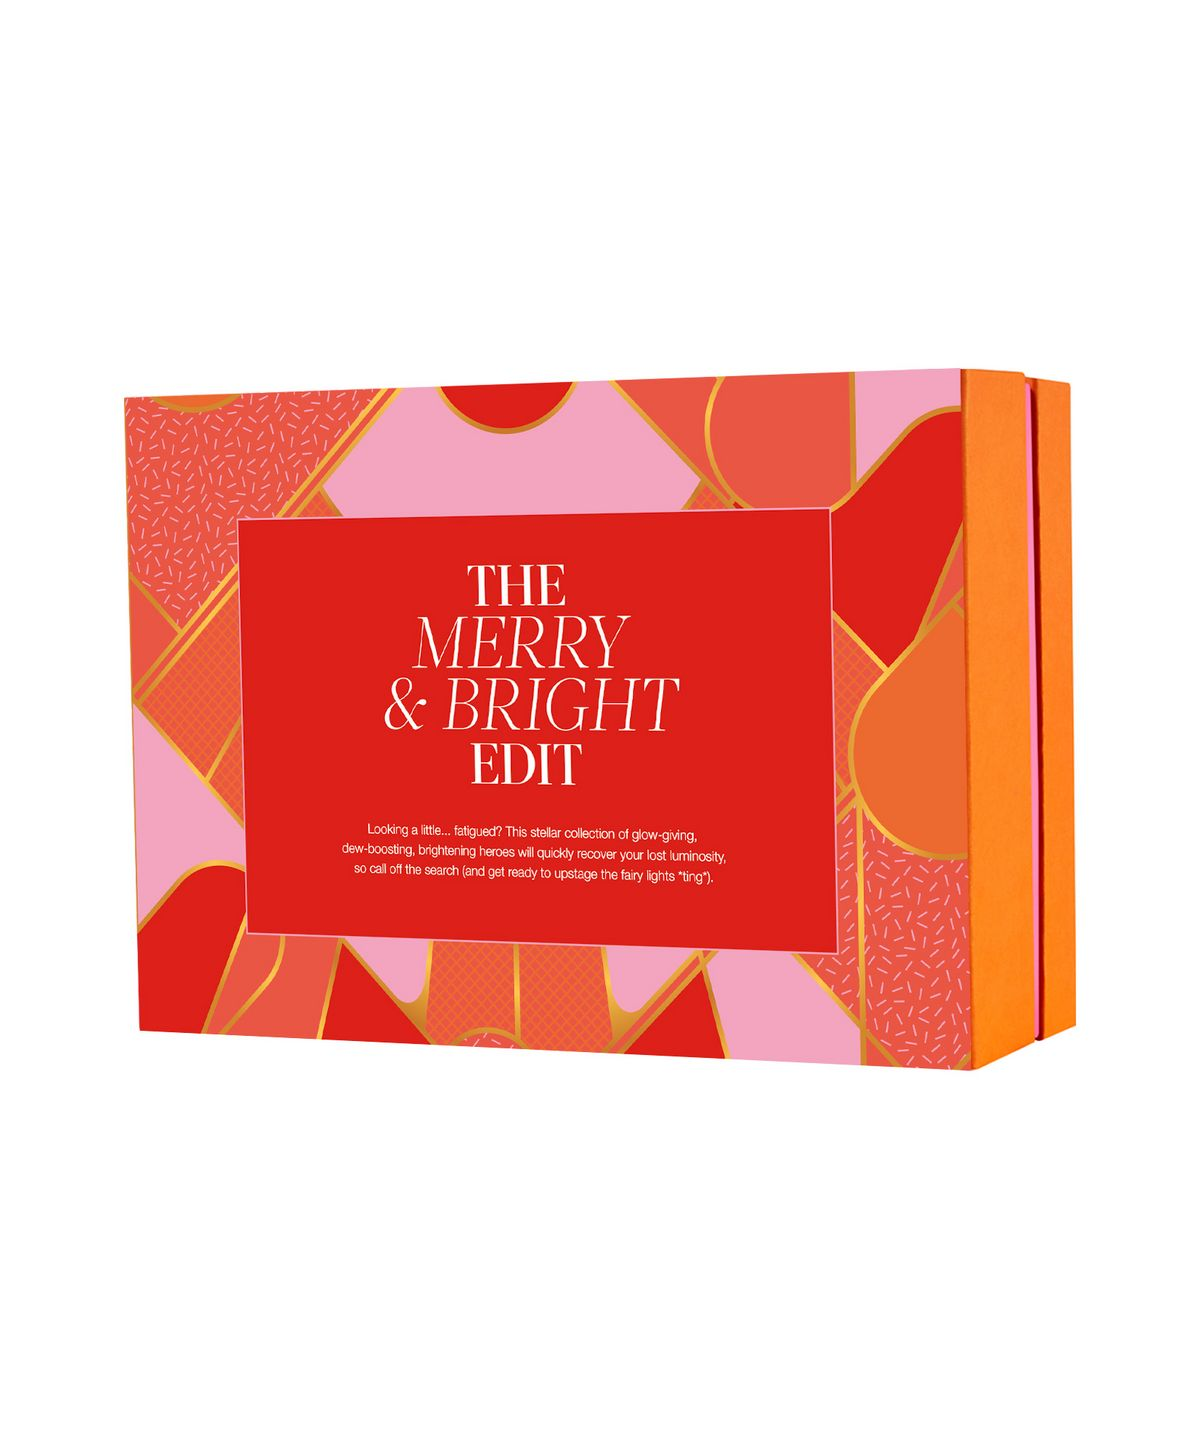 Cult Beauty The Merry & Bright Edit Beauty Box Contents Reveal!